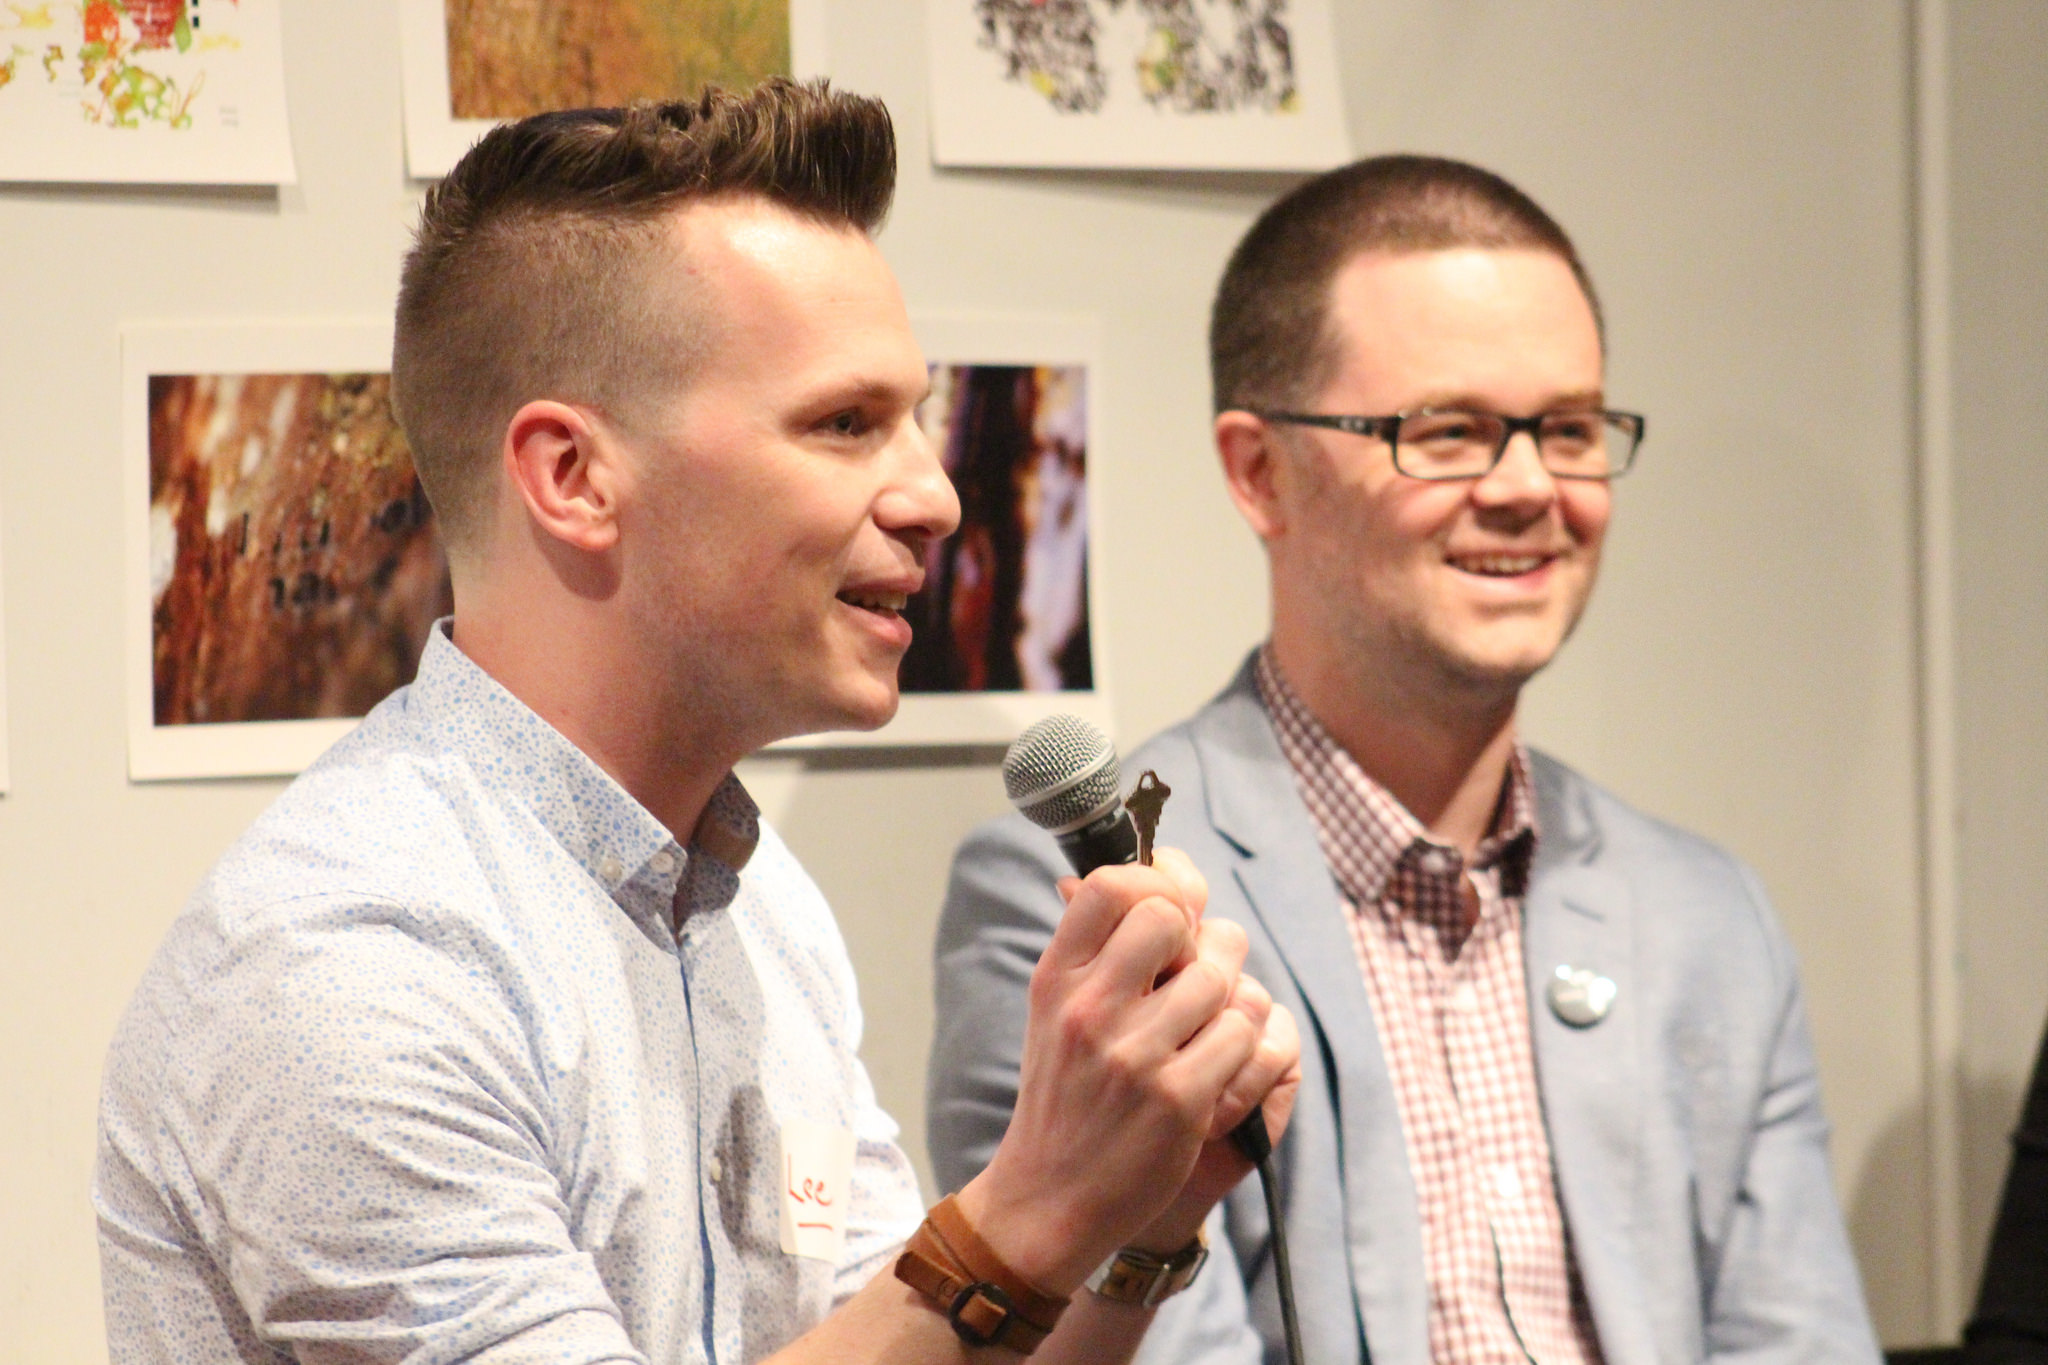 Lee Rose speaking into a microphone while standing beside an out-of-focus, smiling man.